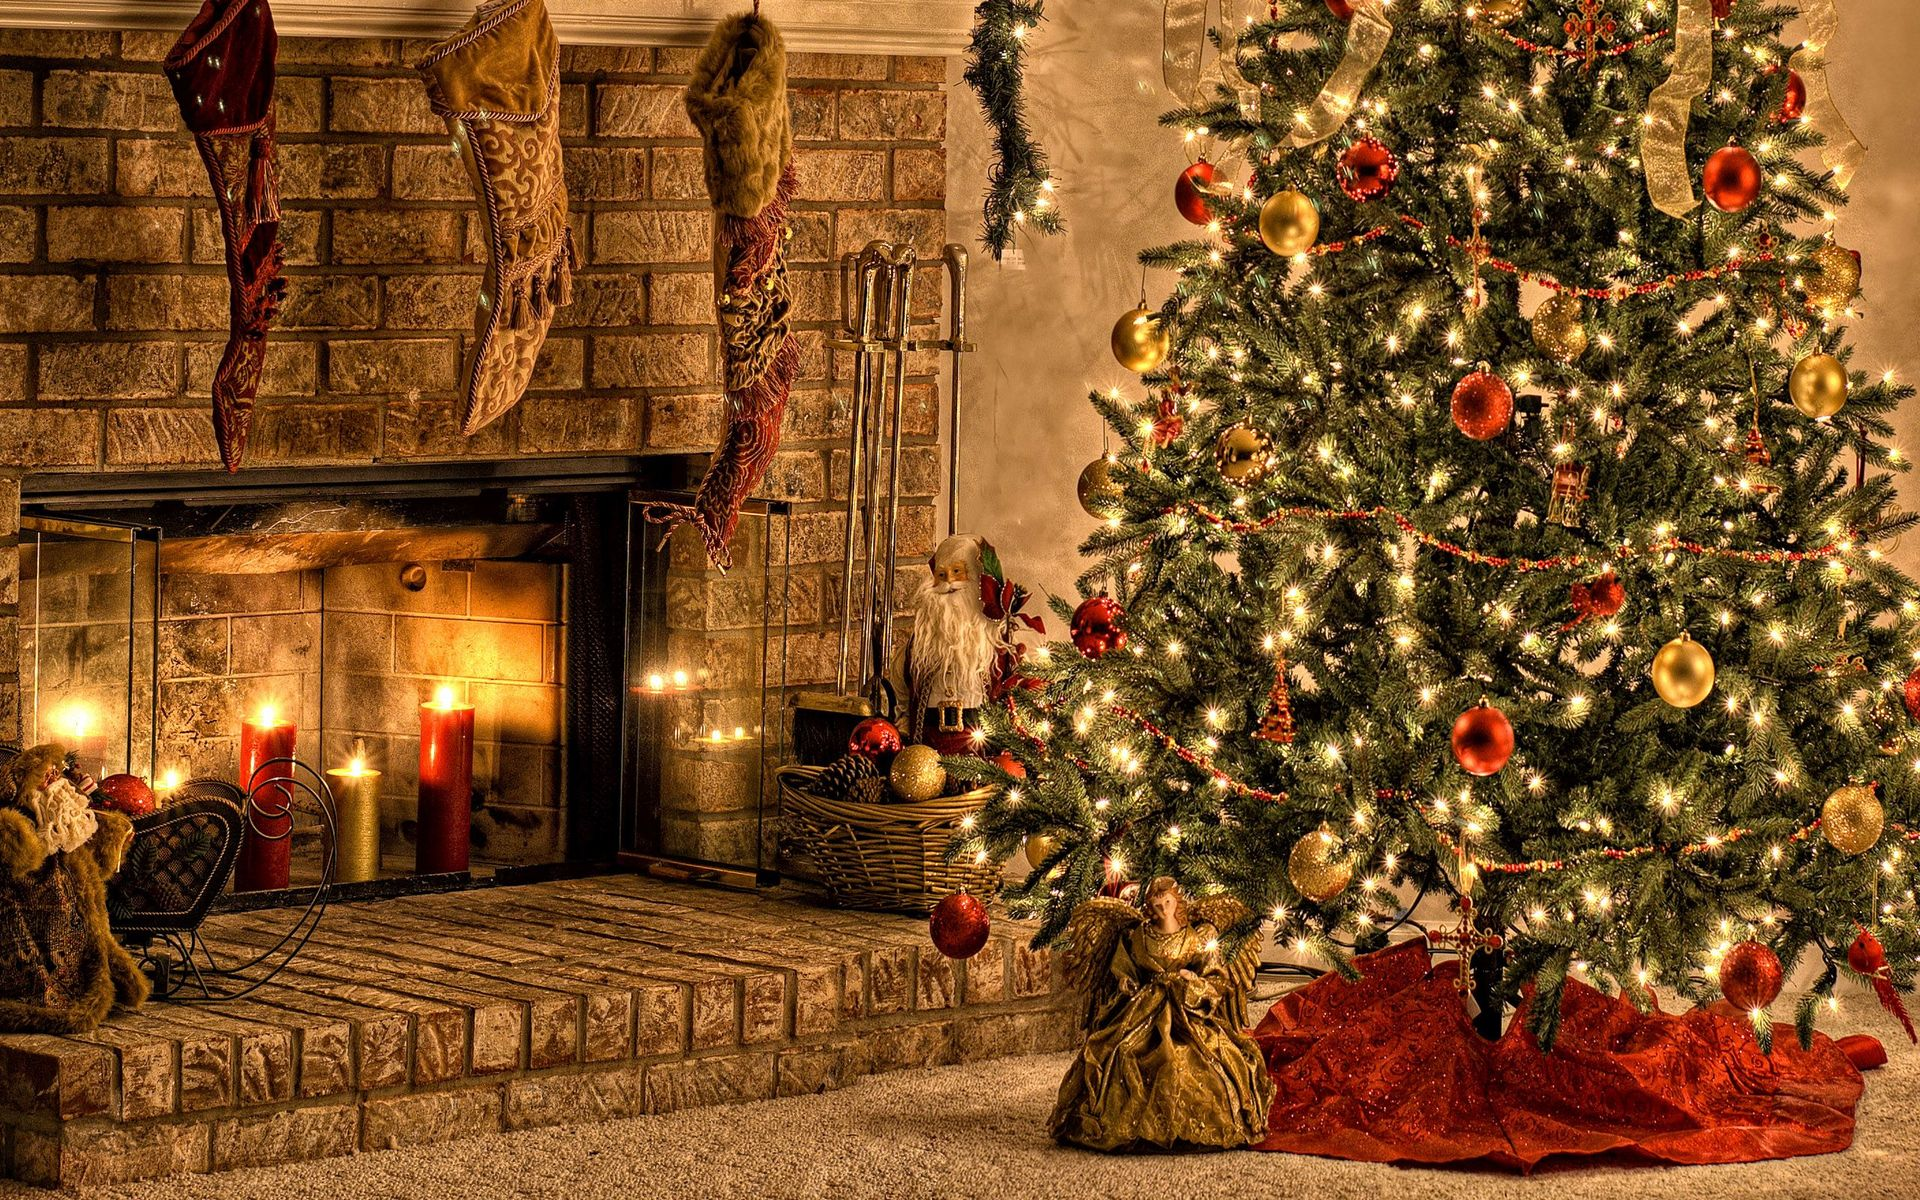 cozy christmas wallpaper wallpapersafari